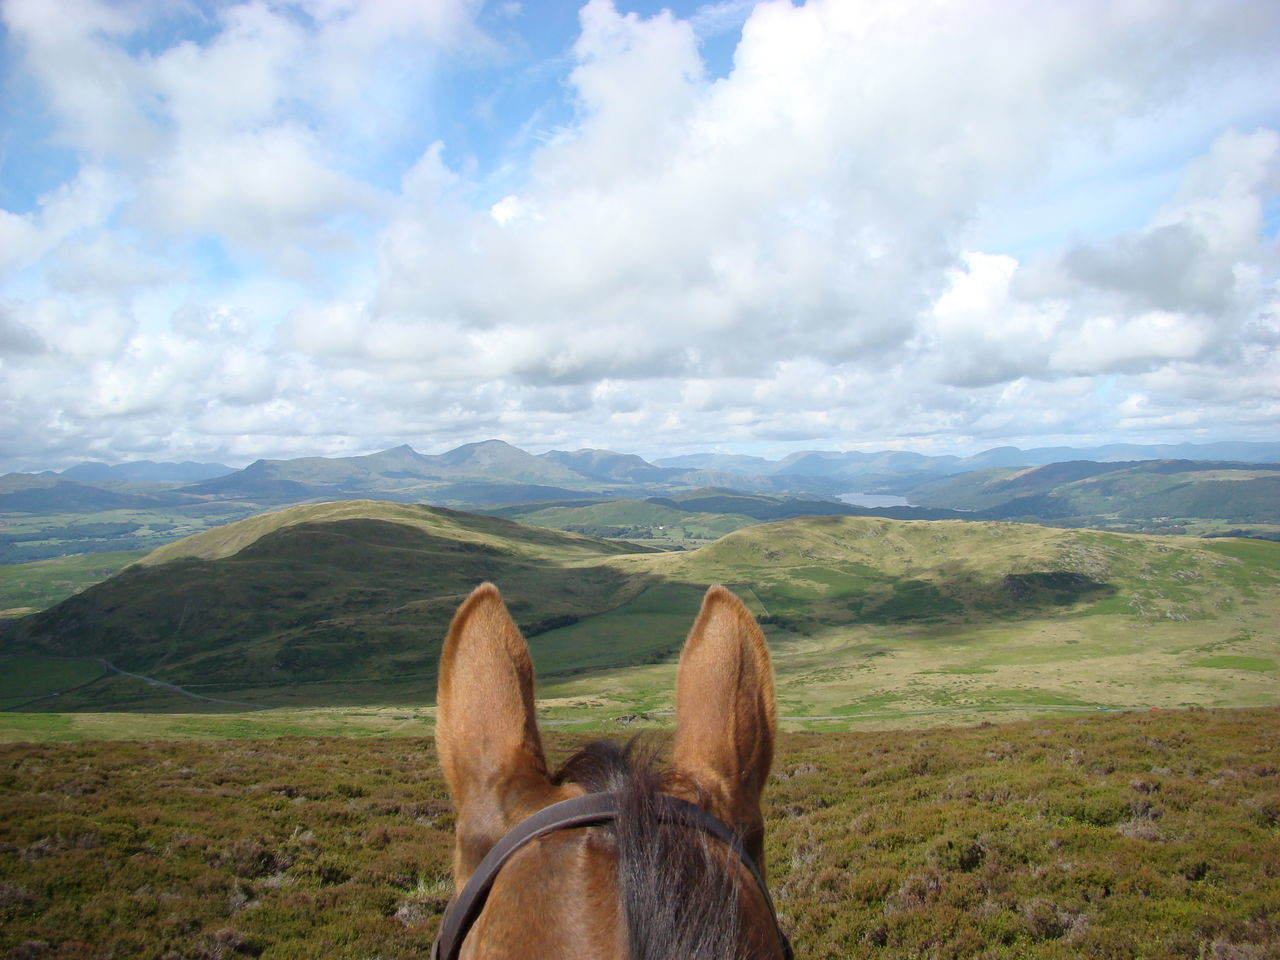 Through Horses Ears. Gareth DaBell Equestrian Horse Horse Photography  Horse Riding Landscape Mountains Outdoor Photography Outdoor Sports Personal Perspective Remote Sky Throughhorsesears Throughmyeyes Trekking